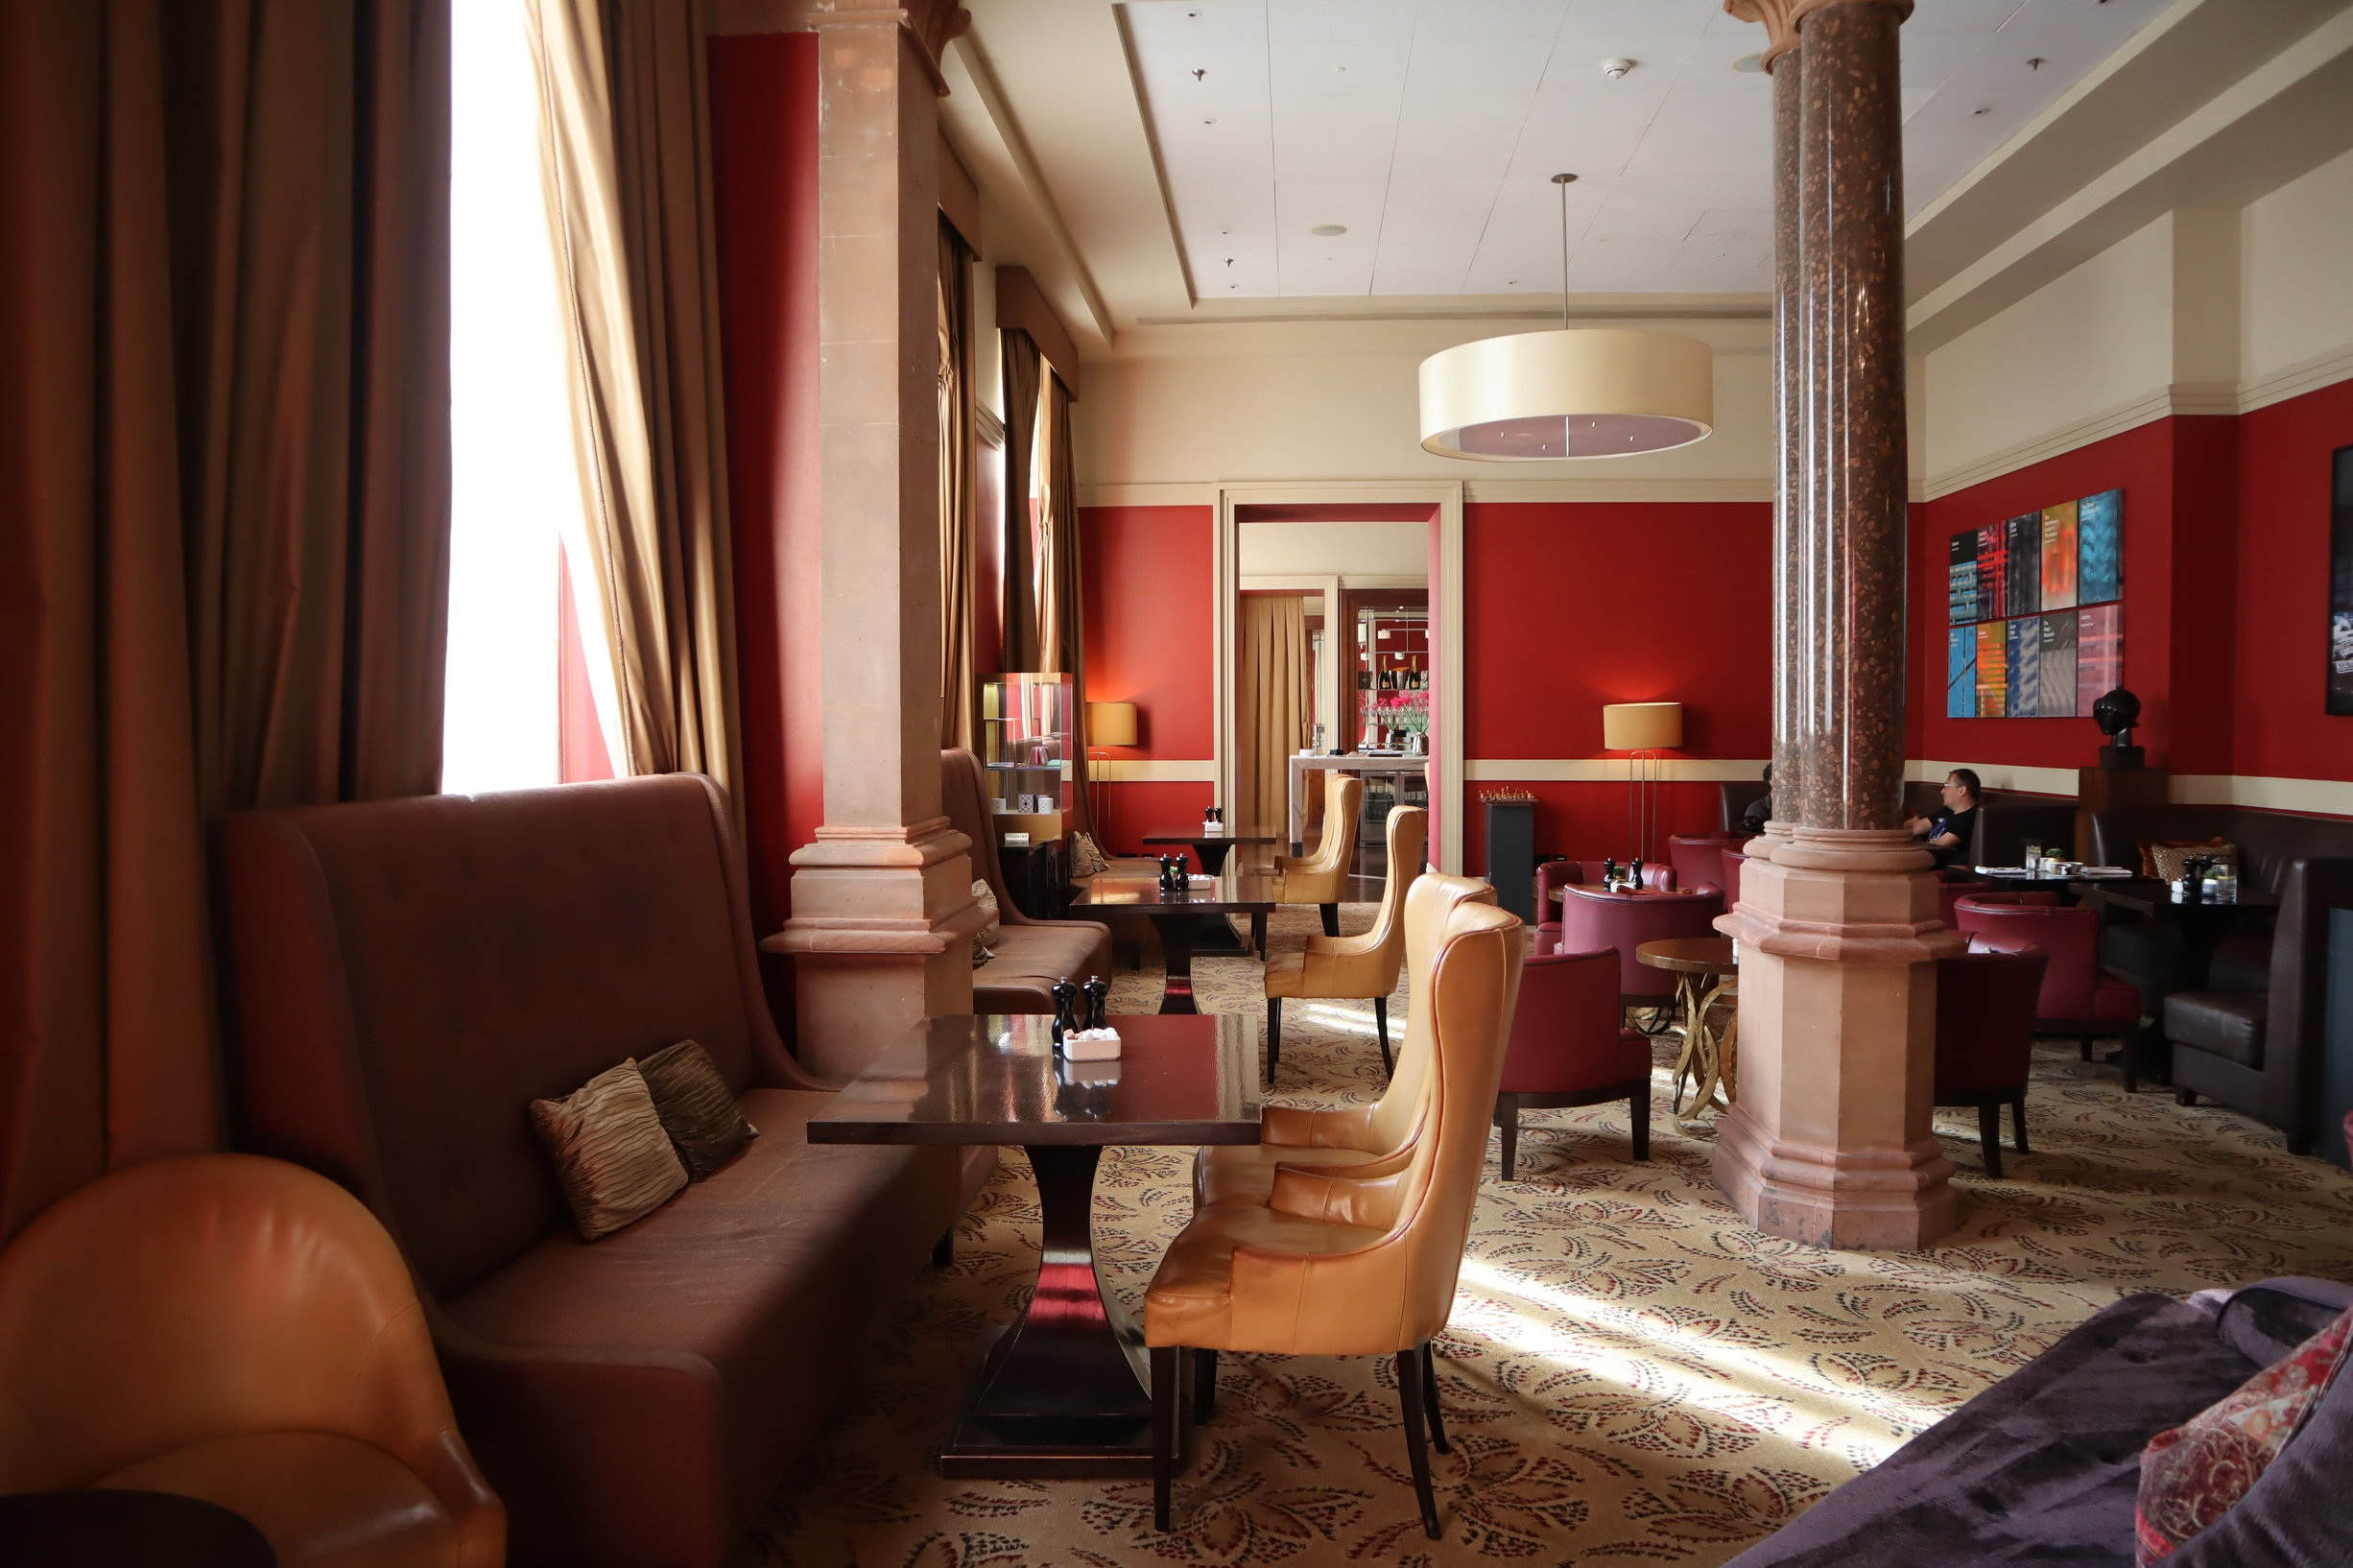 St. Pancras Renaissance Hotel London – Chambers Club seating area